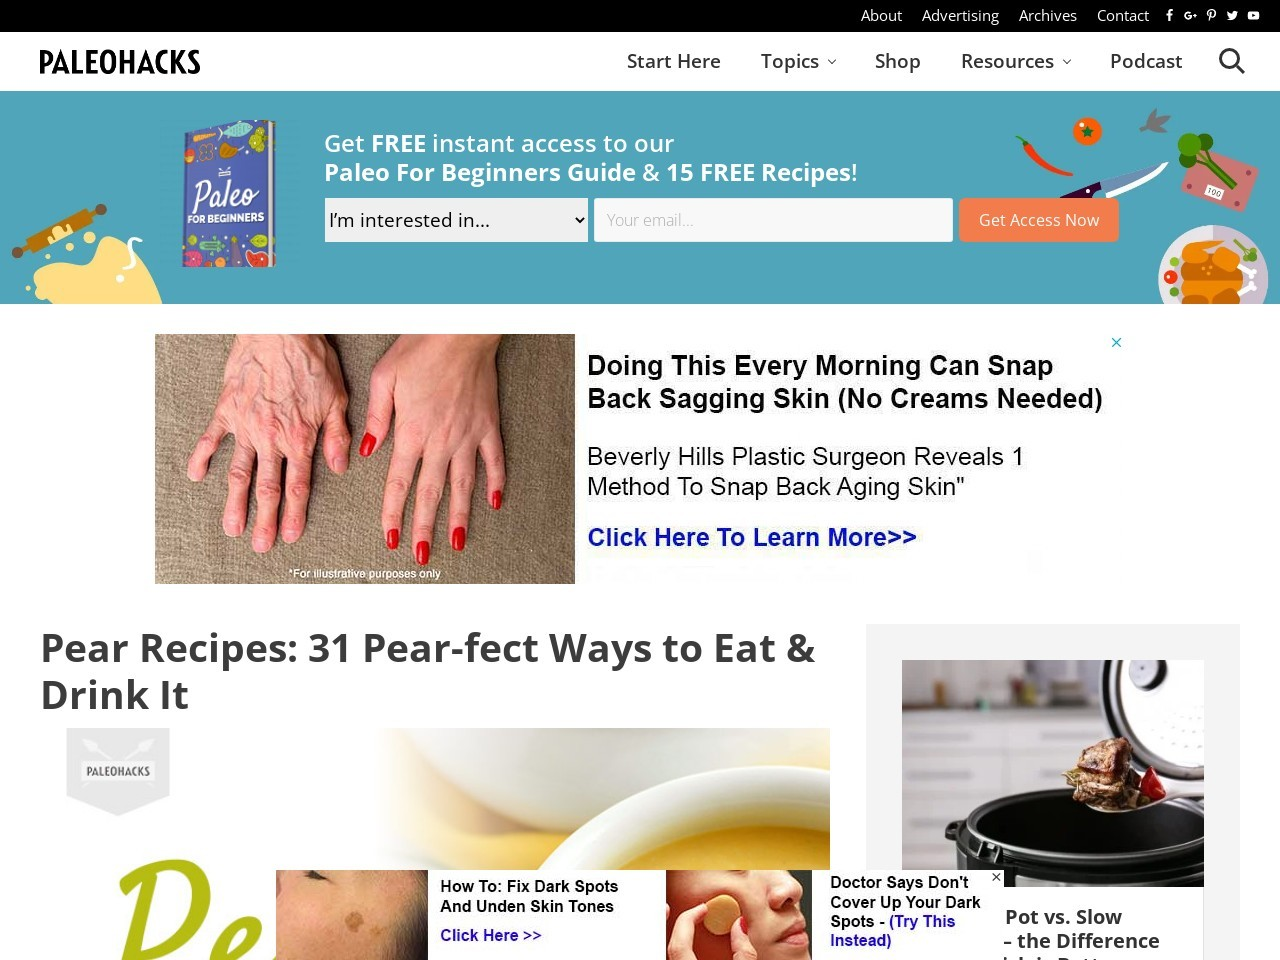 Pear Recipes: 31 Pear-fect Ways to Eat & Drink It